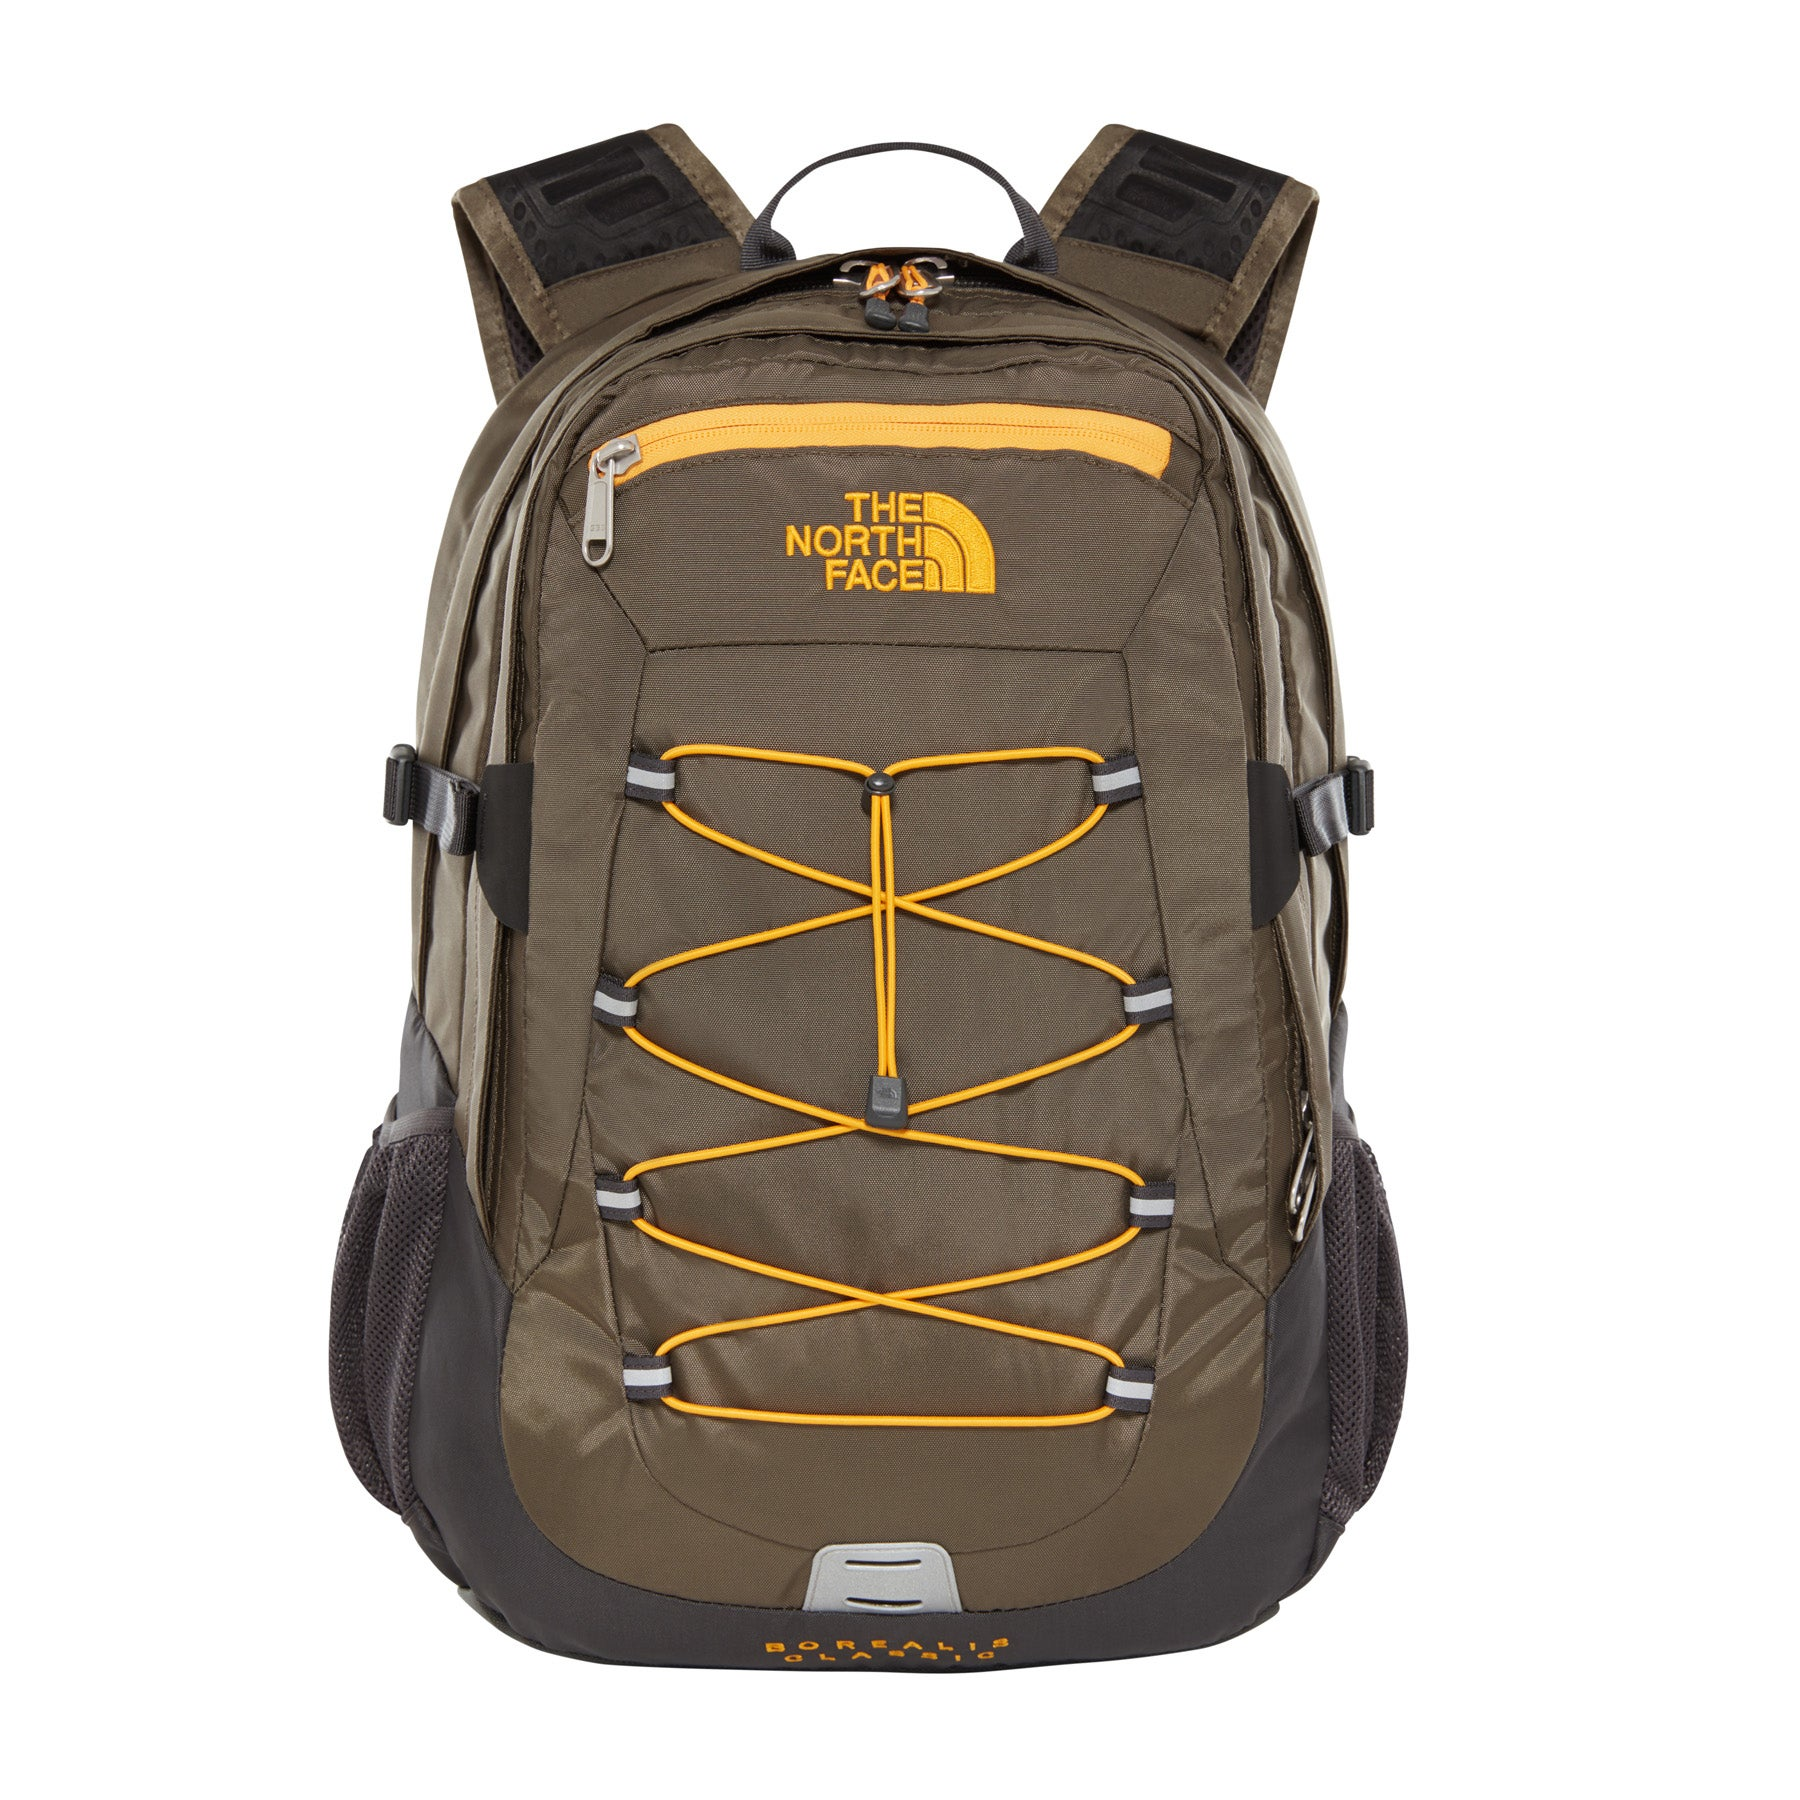 North Face Borealis Classic Backpack - New Taupe Green Asphalt Gray